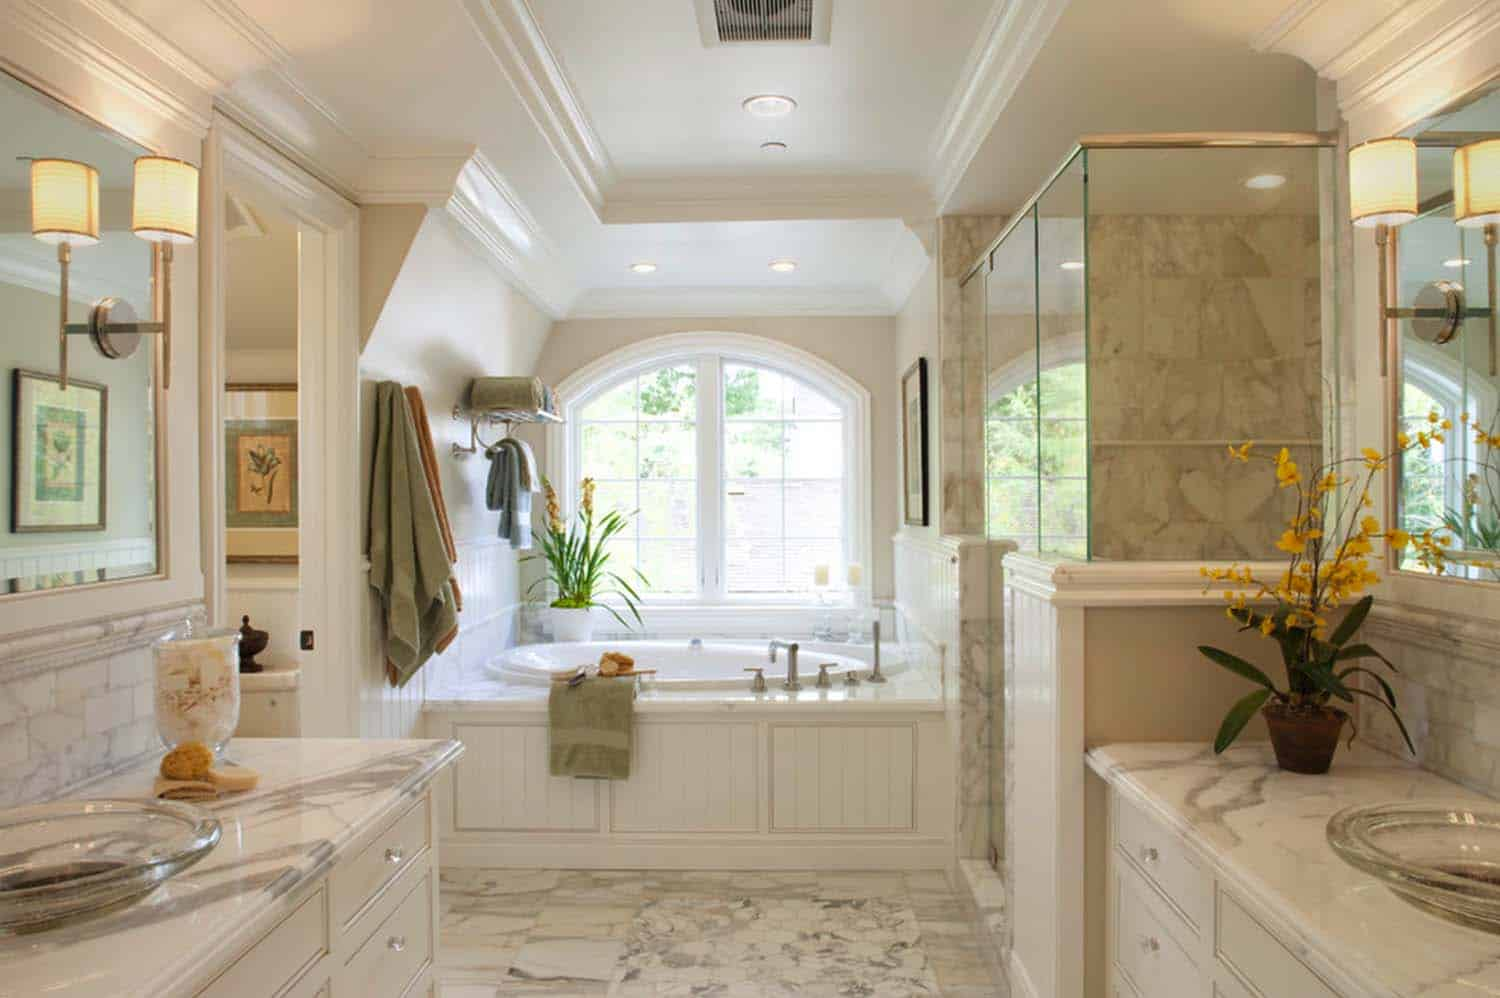 Traditional Bathroom Design Ideas Extraordinary 53 Most Fabulous Traditional Style Bathroom Designs Ever Inspiration Design